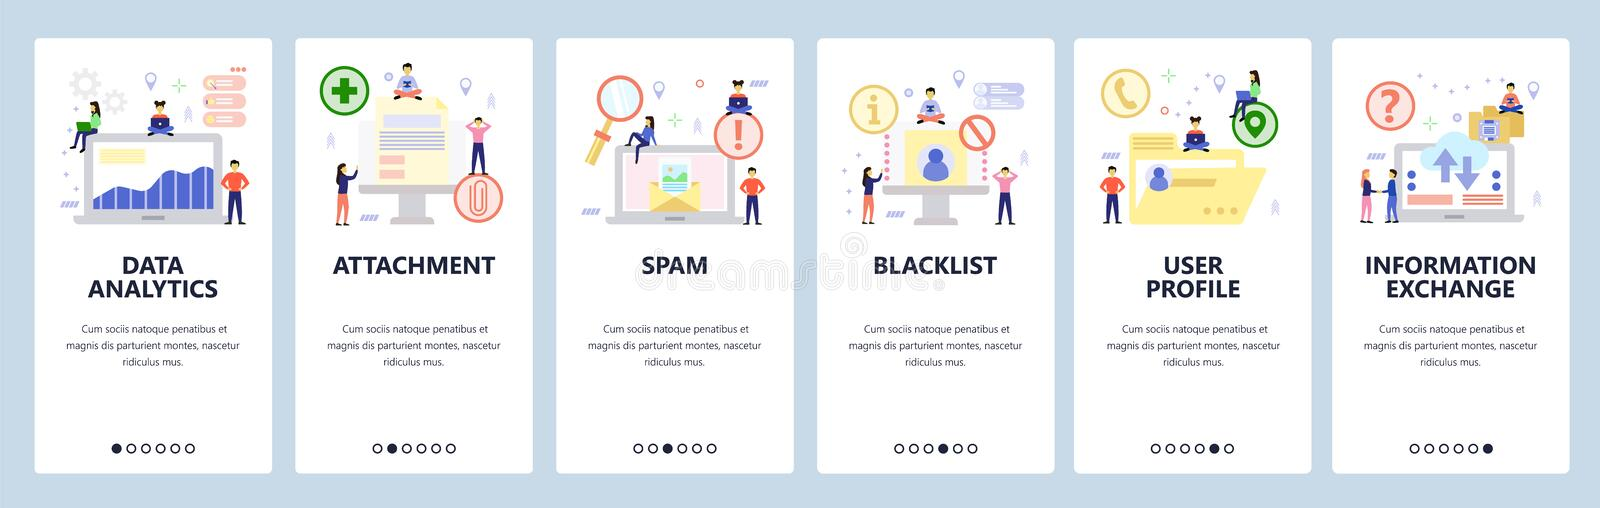 Mobile app onboarding screens. Data analytics and computer technology, email, spam, blacklist. Menu vector banner. Template for website and mobile development vector illustration